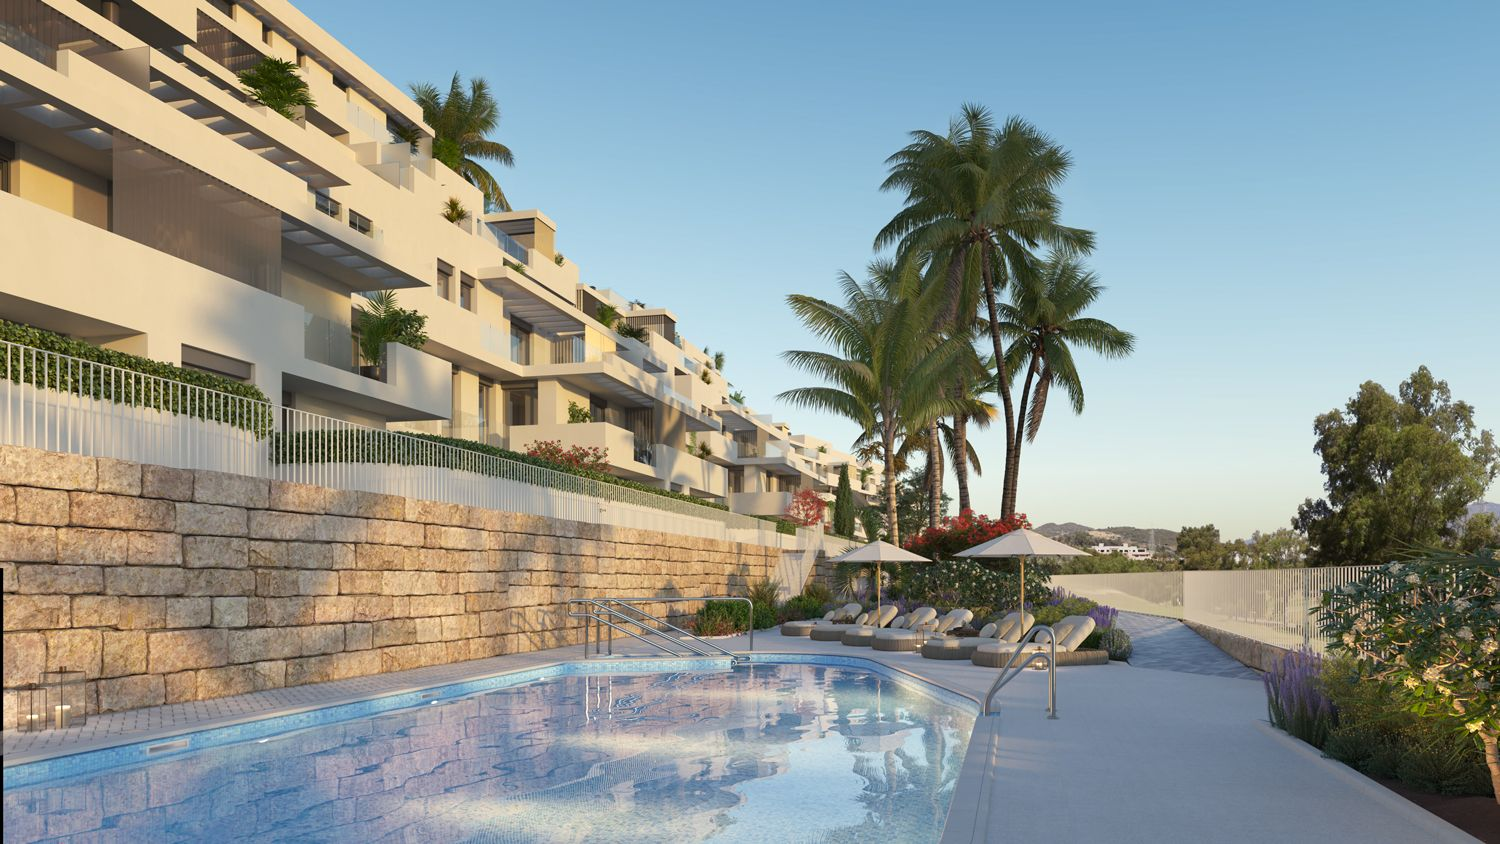 Apartments with views over golf courses in Estepona 17